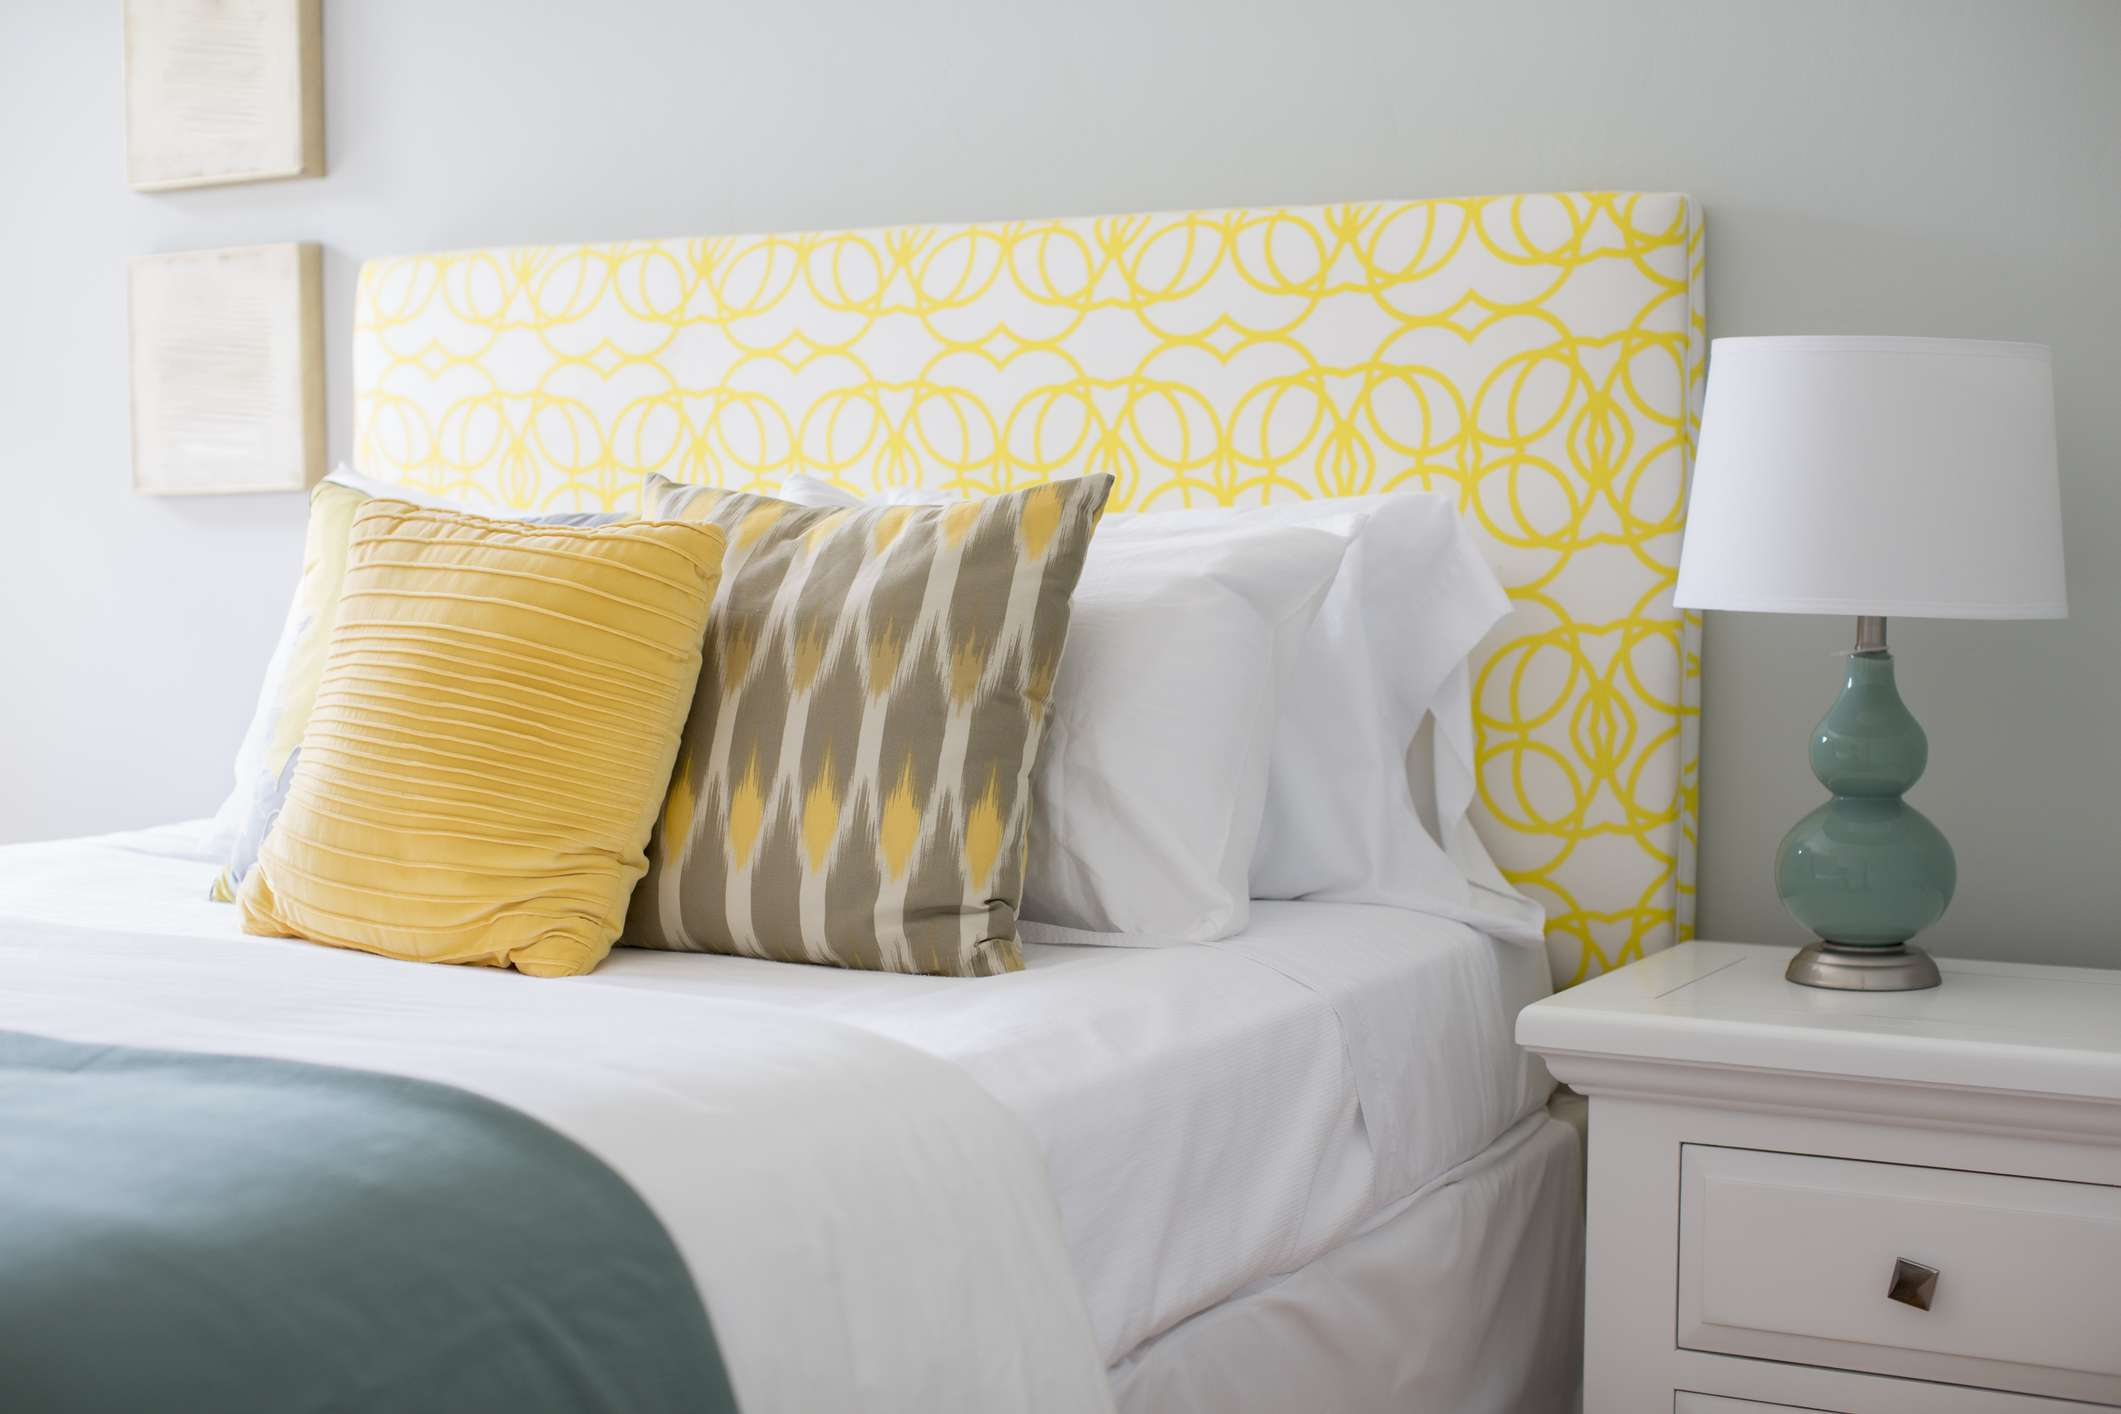 bed with yellow headboard and turquoise accents